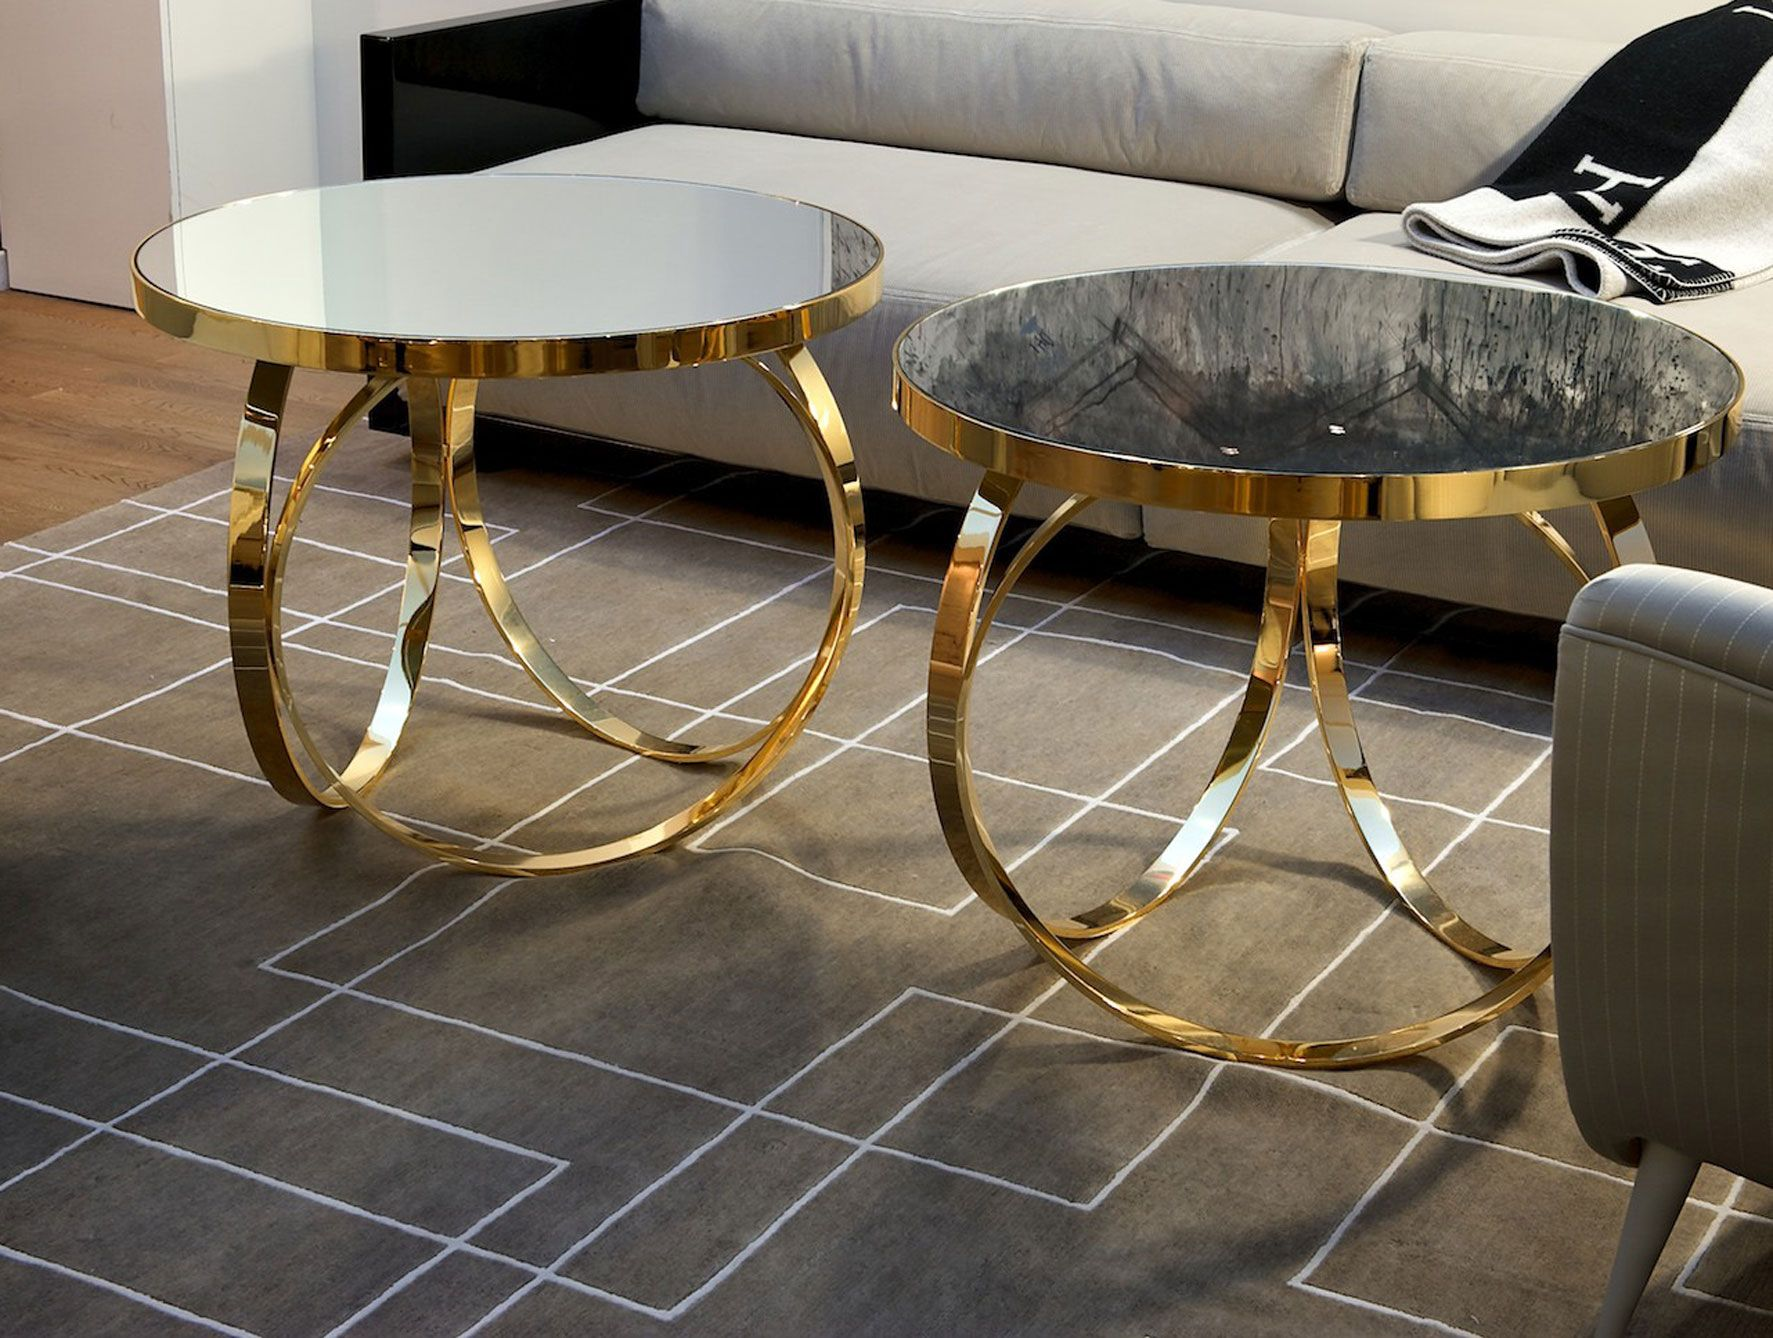 Ottoline contemporary italian table shown in glass top with gold ottoline gold coffee table ottoline contemporary italian table shown in glass top with gold metal base finishes bronze metal chrome m geotapseo Images